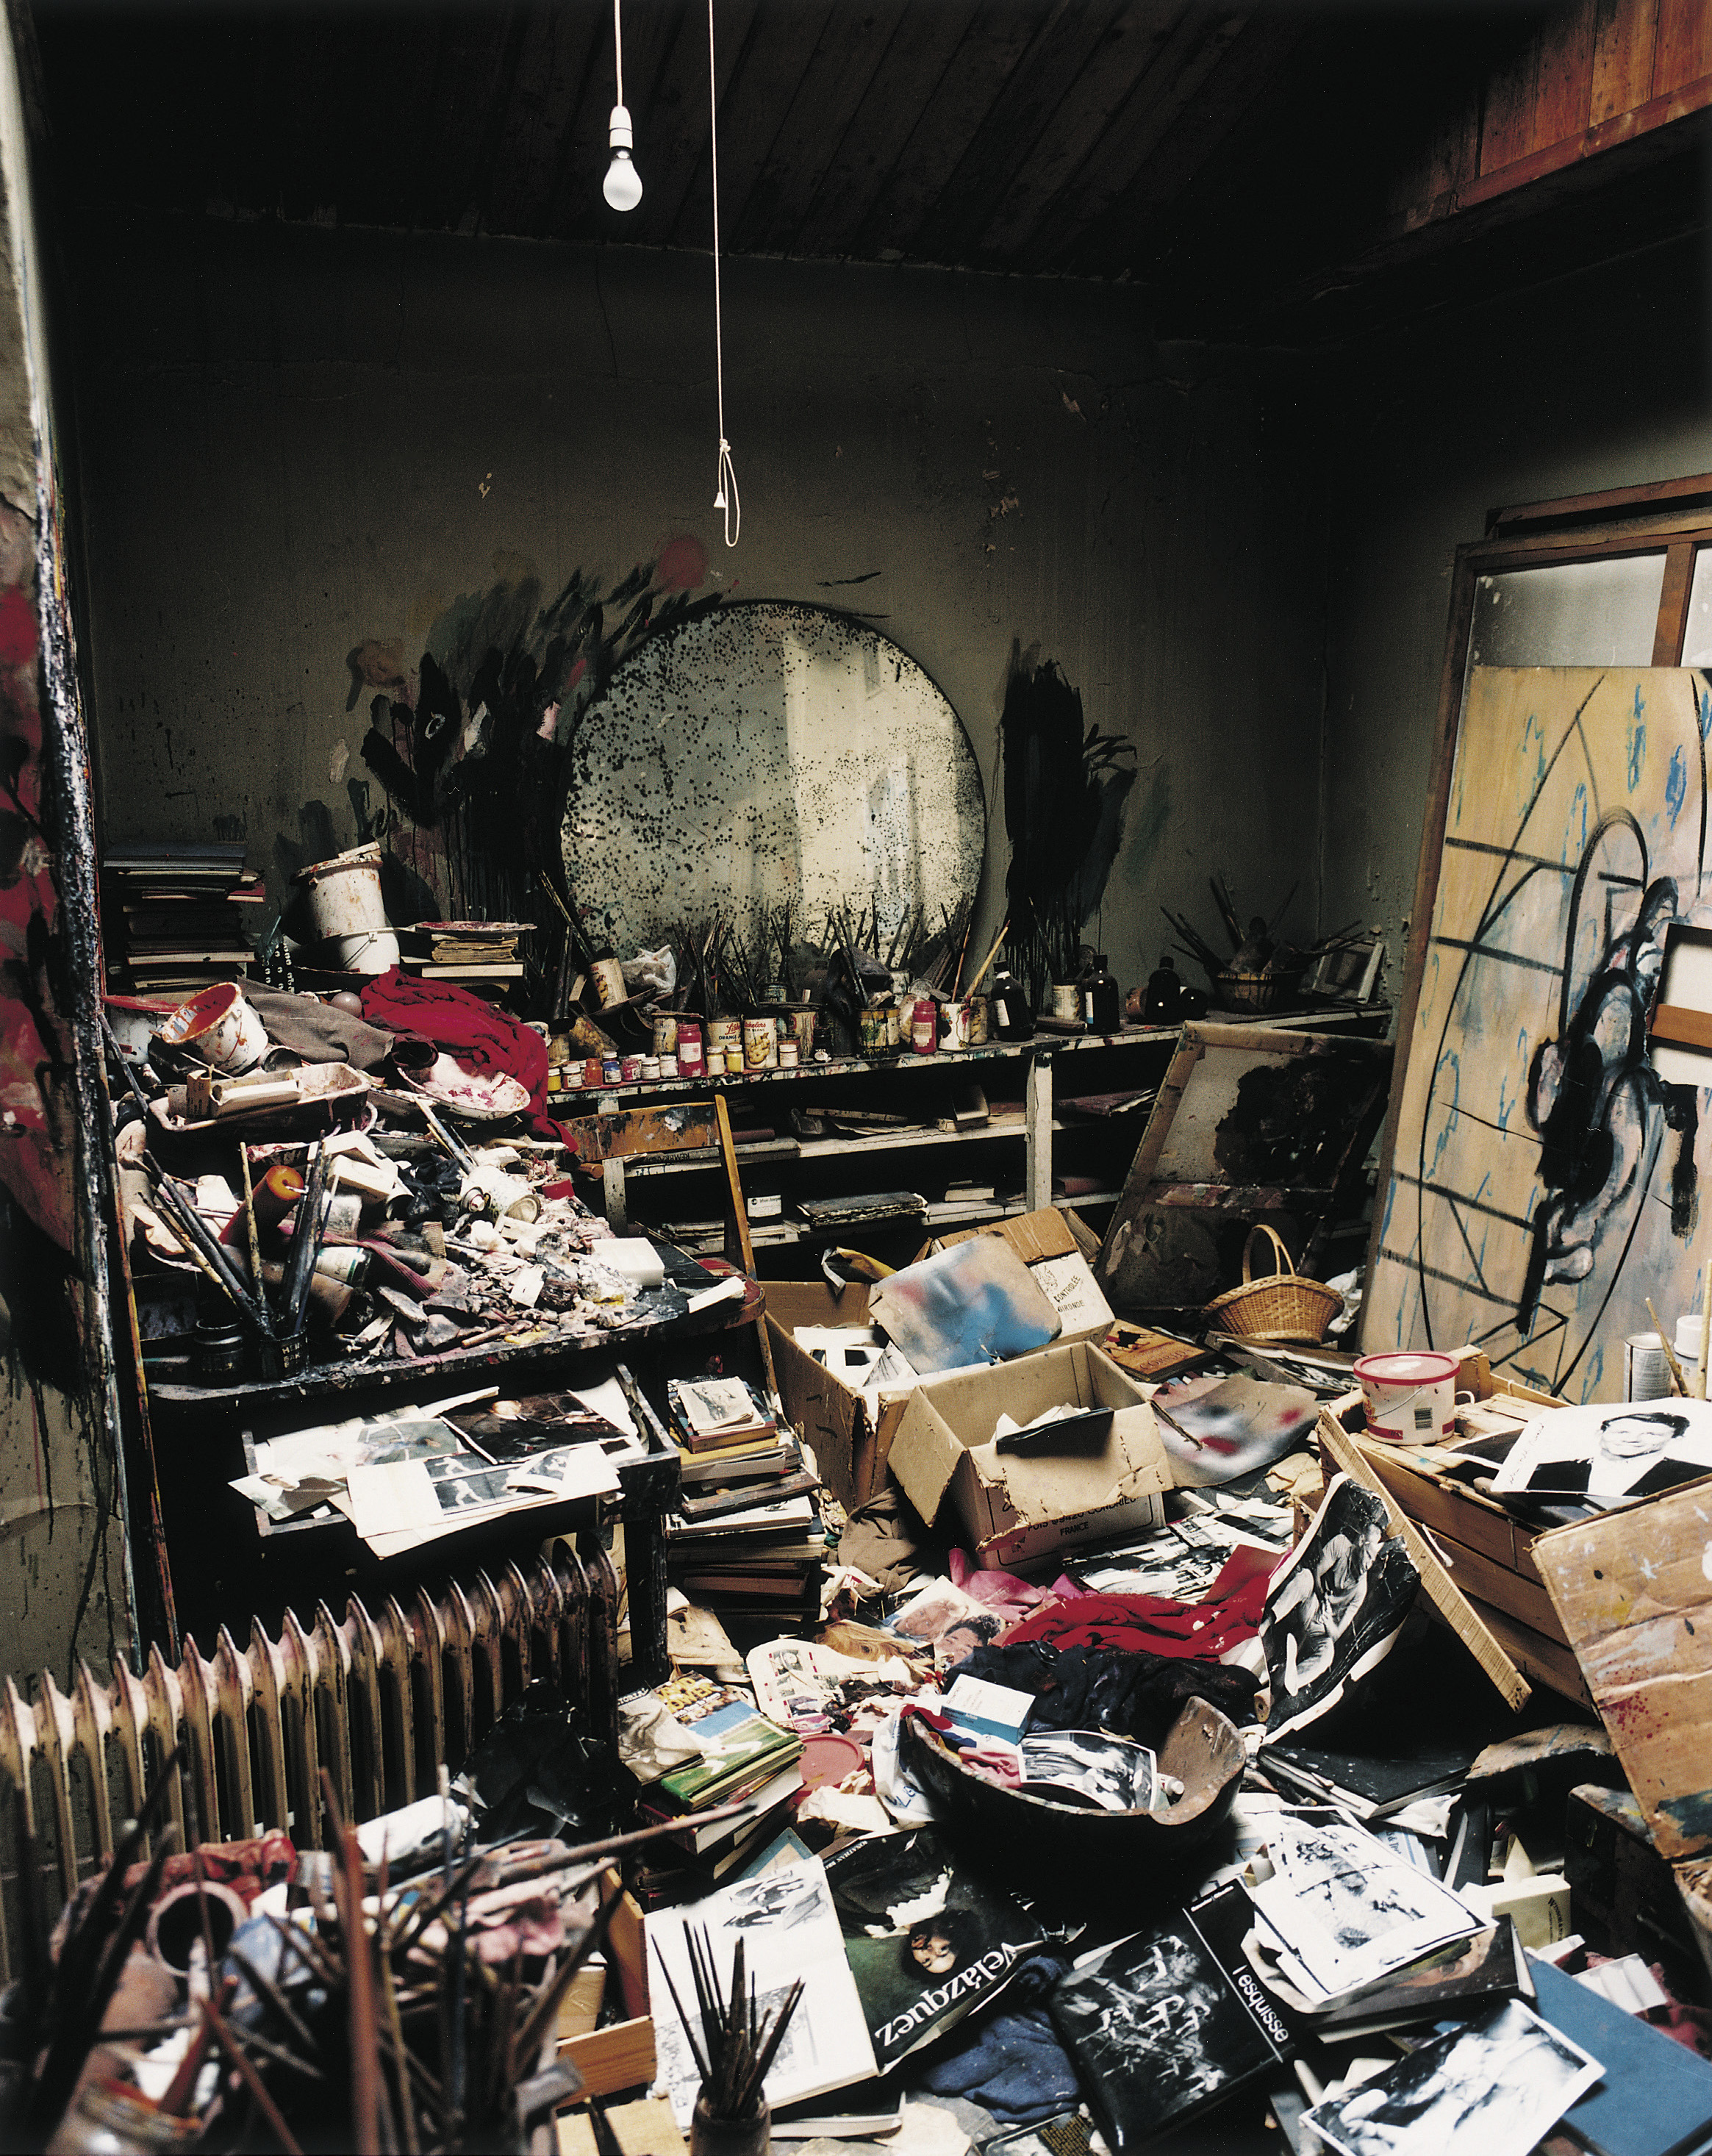 Francis Bacon's 7 Reece Mews Studio, Photograph by Perry Ogden.